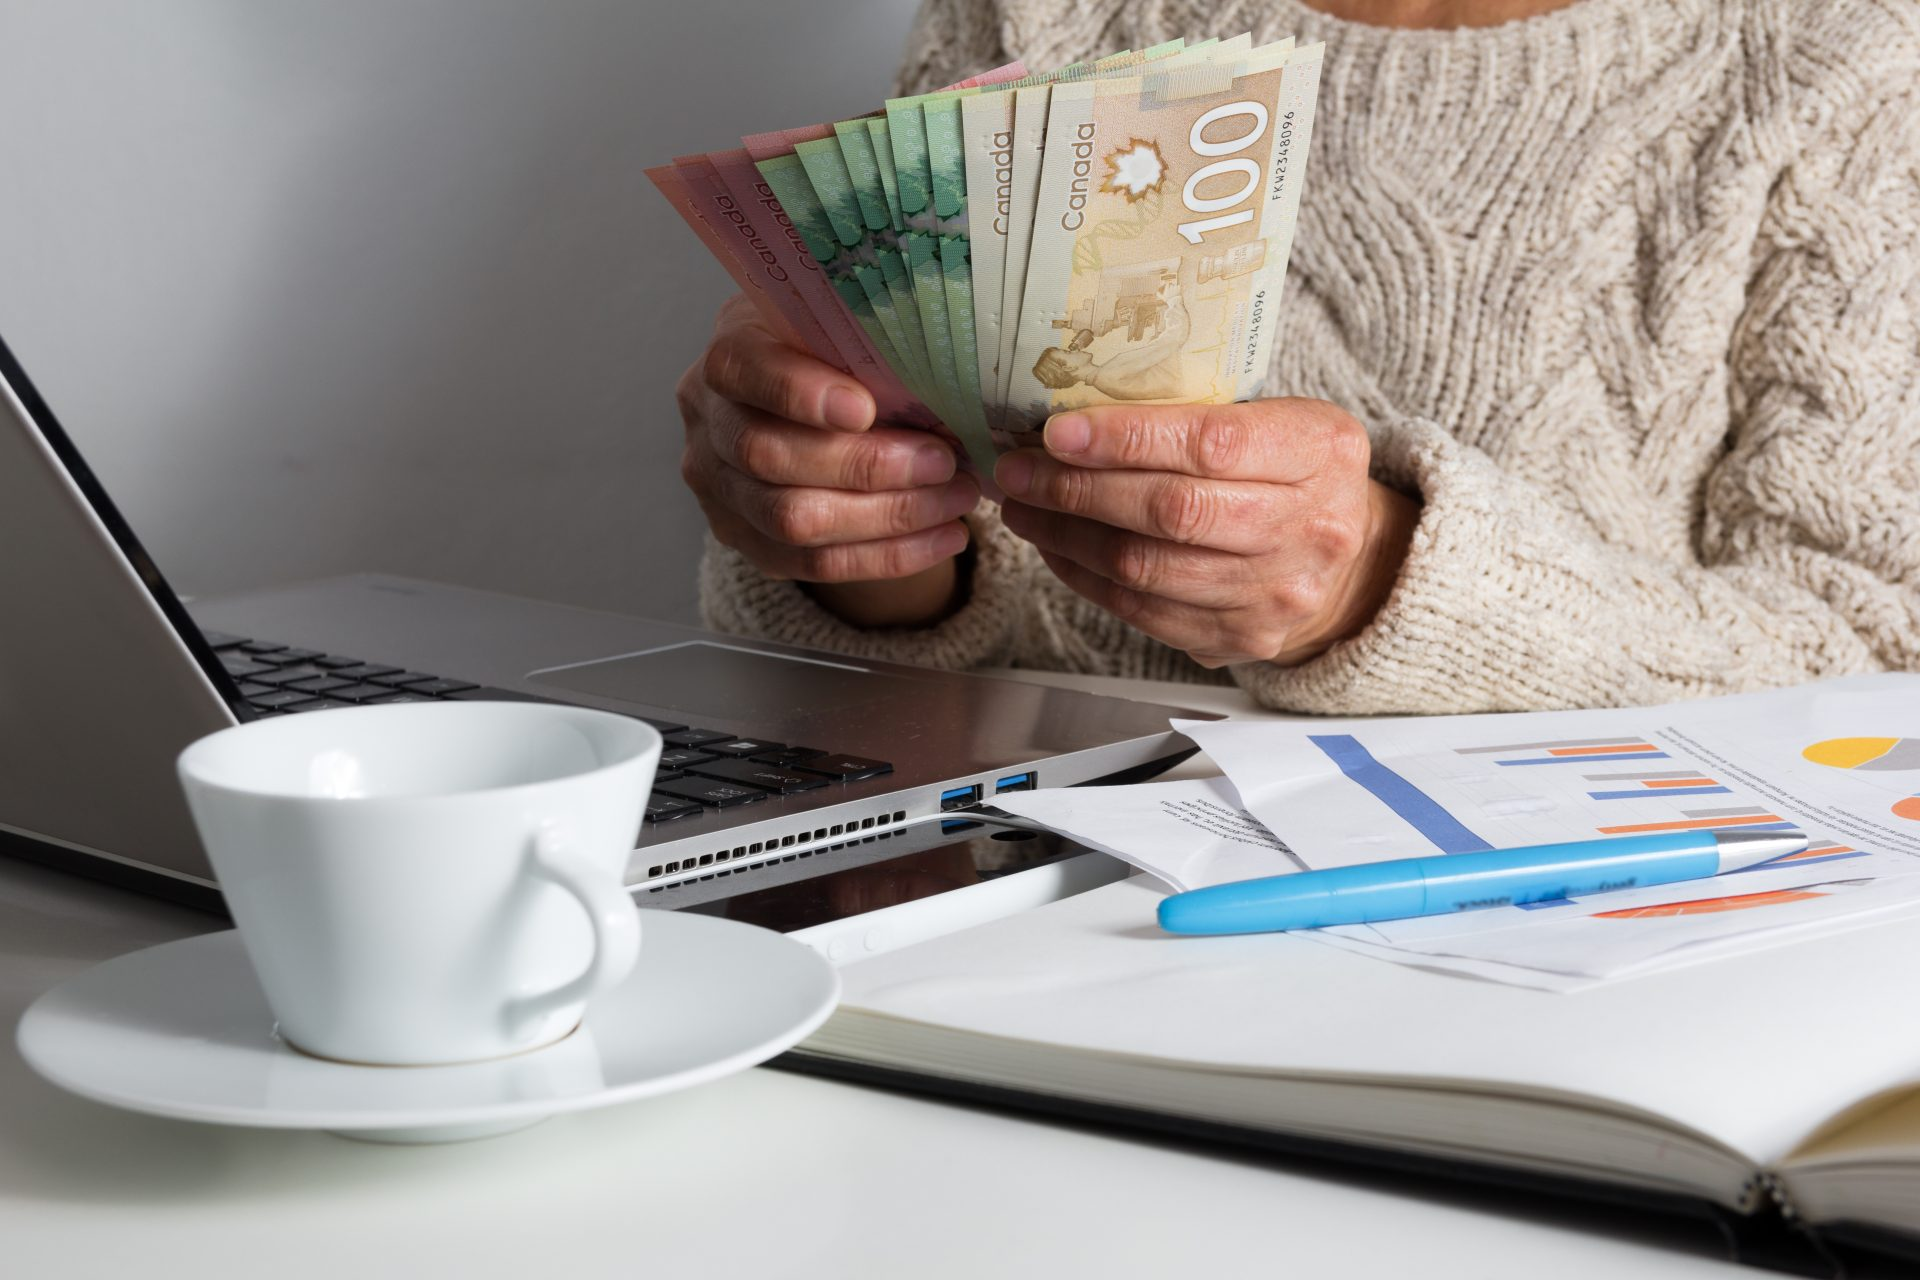 Woman counting Canadian money beside a laptop, coffee mug, and spreadsheets